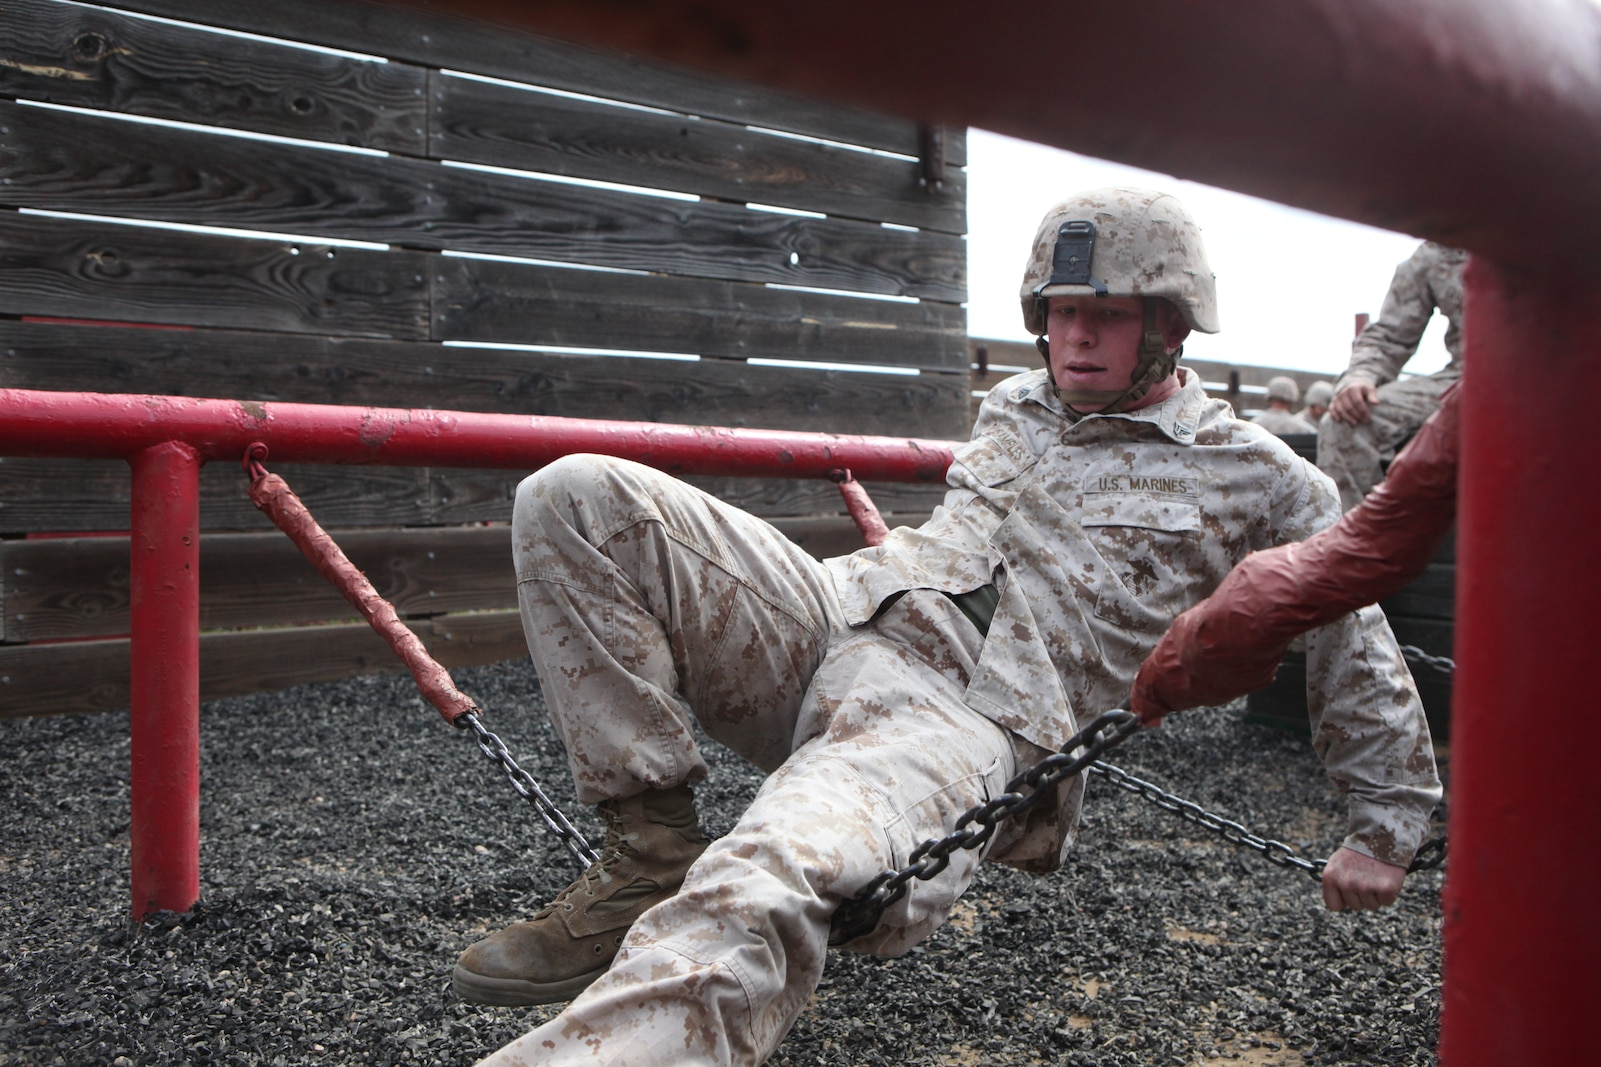 Corporal Jeffrey Samples, motor transport operator, Combat Logistics Battalion 5, Combat Logistics Regiment 1, 1st Marine Logistics Group, cautiously makes his way across an obstacle during the Leadership Reaction Course aboard Camp Pendleton, Calif., April 4, 2014. The course is designed to build leadership traits and further develop the bonds between Marines.